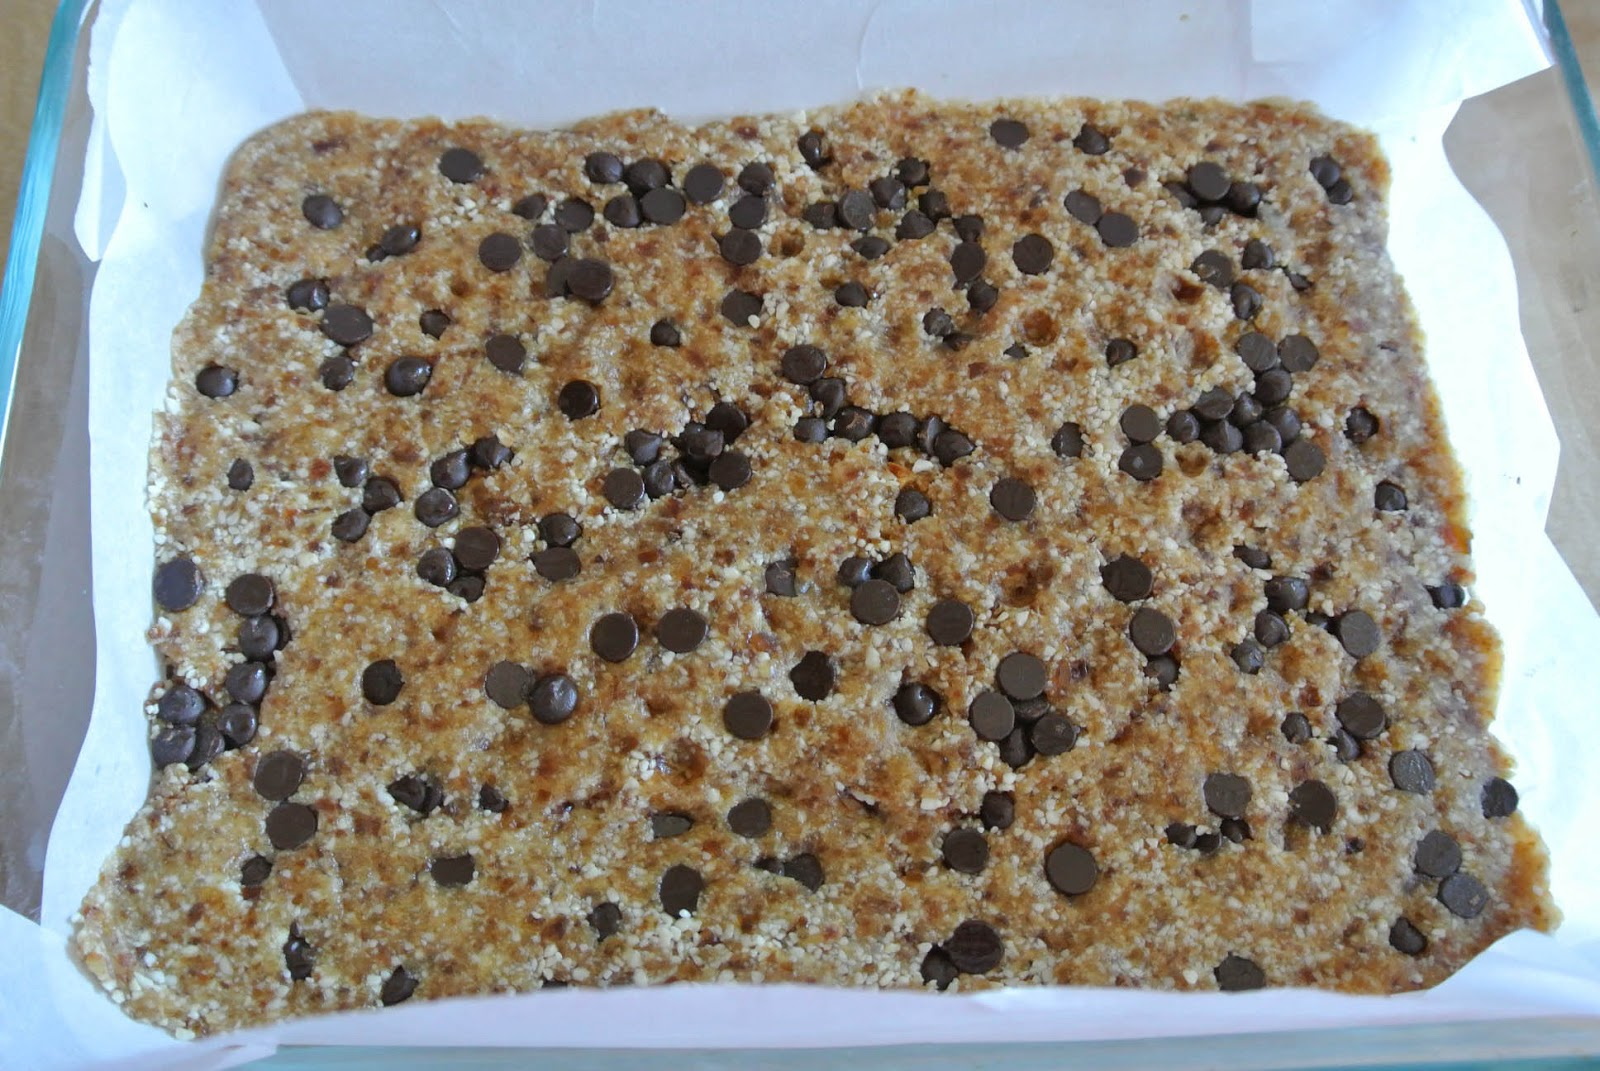 Place in the freezer for 1 hour and then cut into bars. Store in an ...